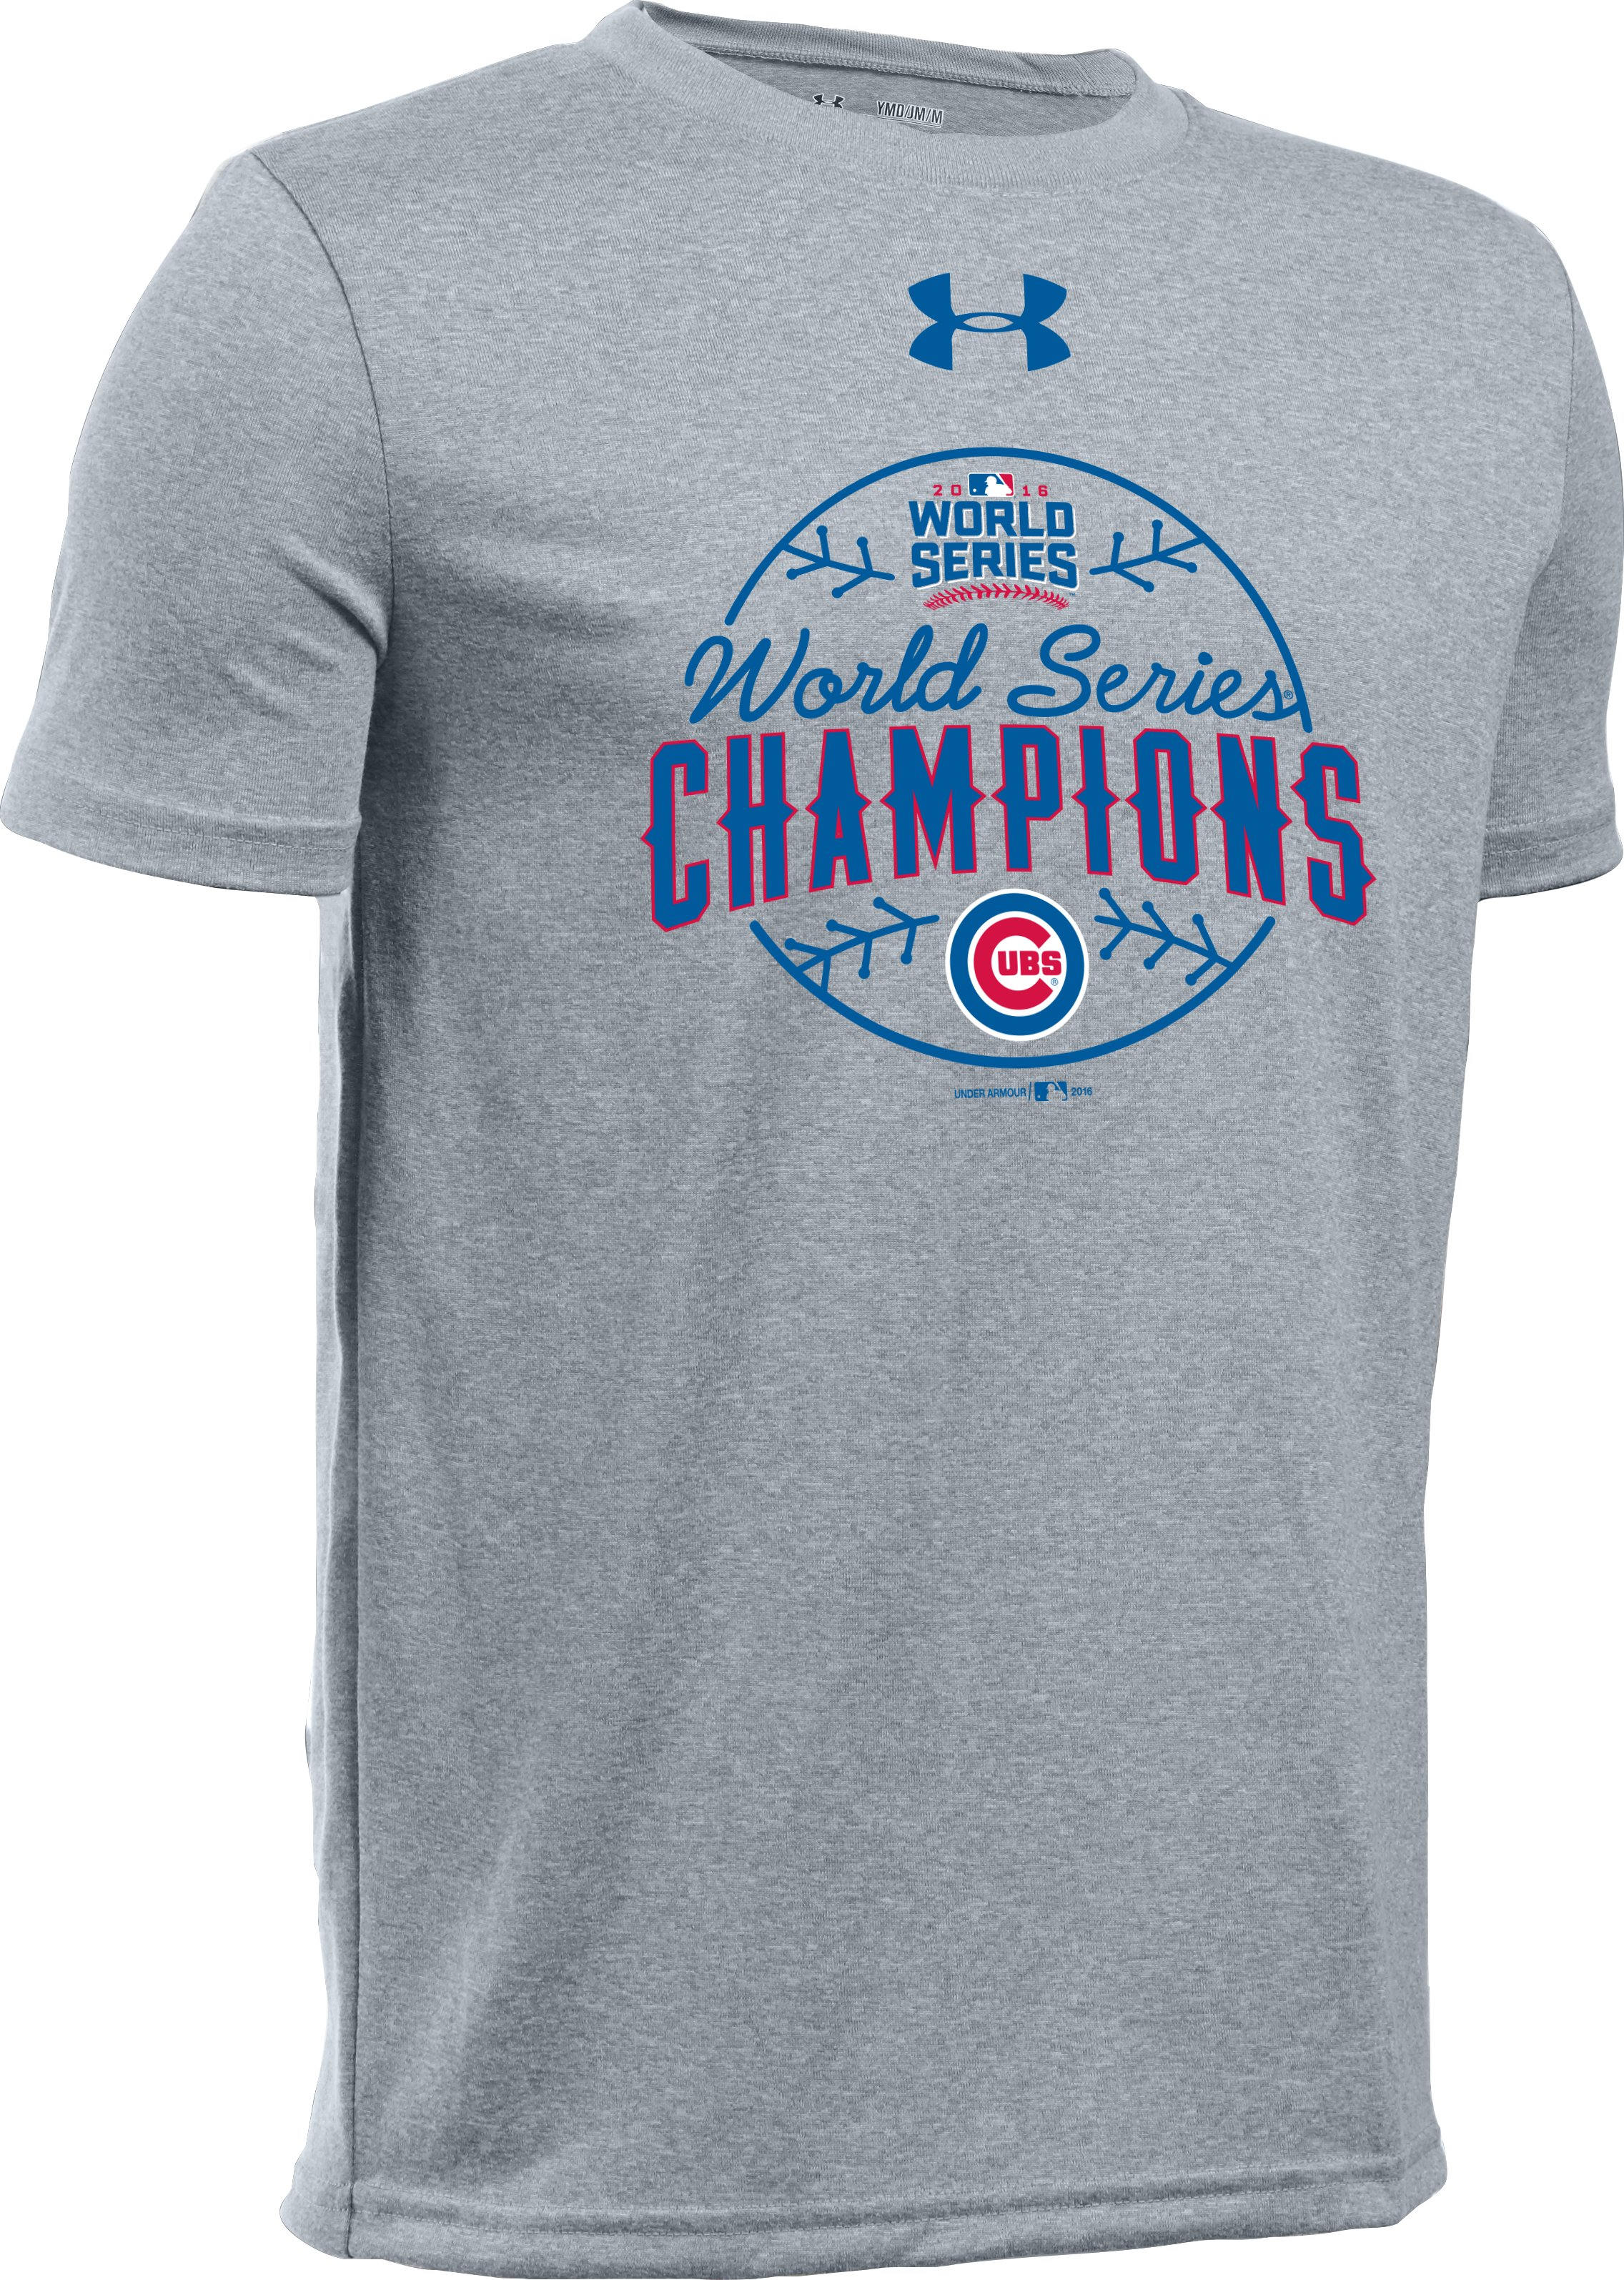 Kids' Chicago Cubs World Series Champ T-Shirt, True Gray Heather